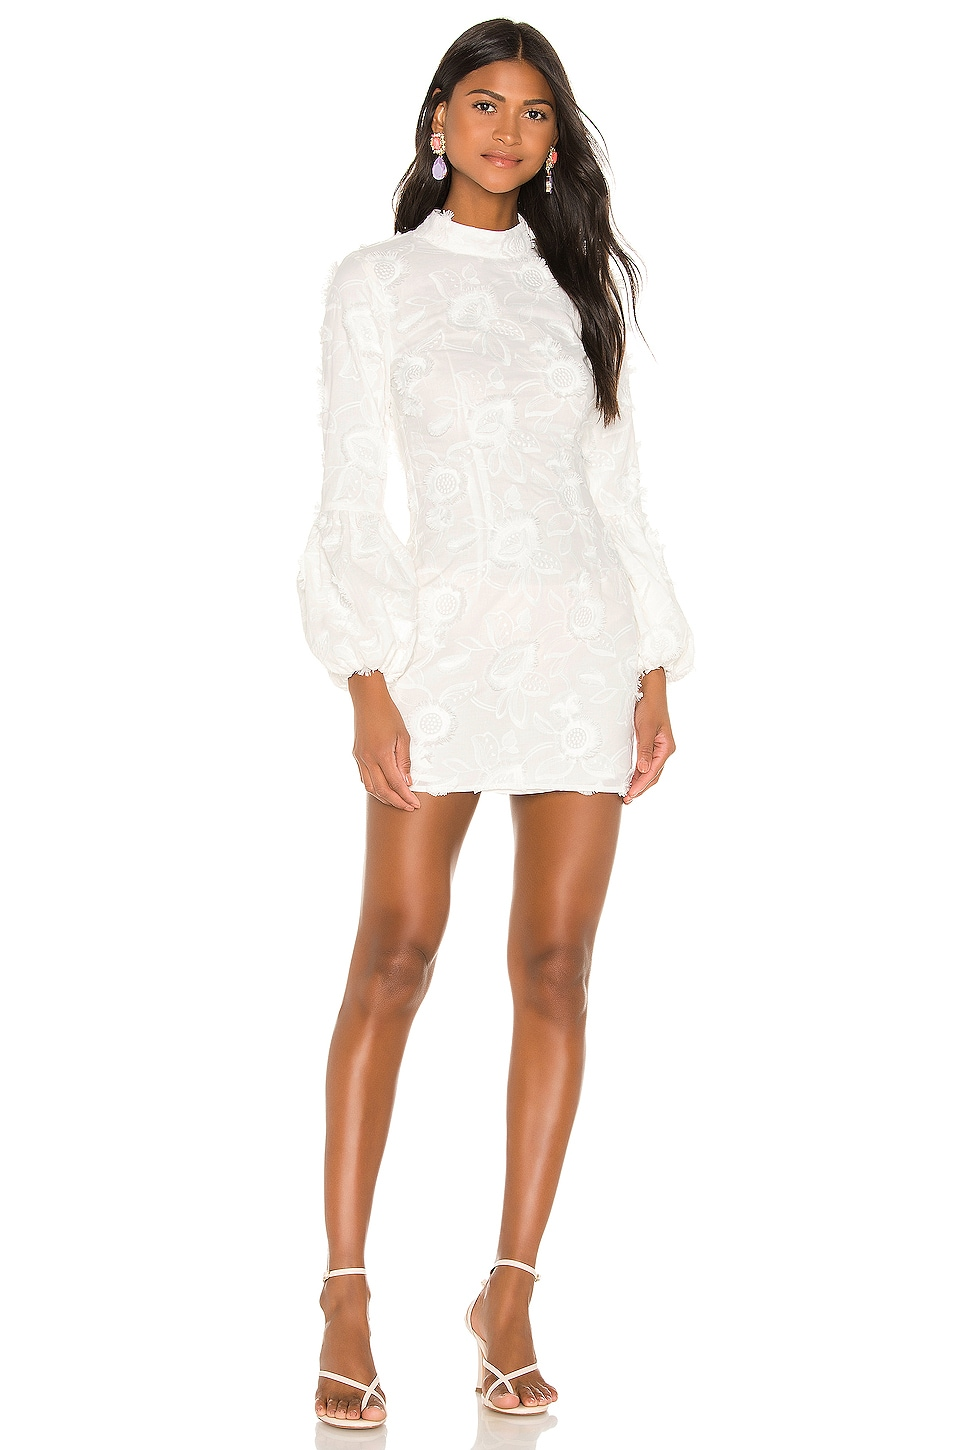 Camila Coelho Francesca Mini Dress in White